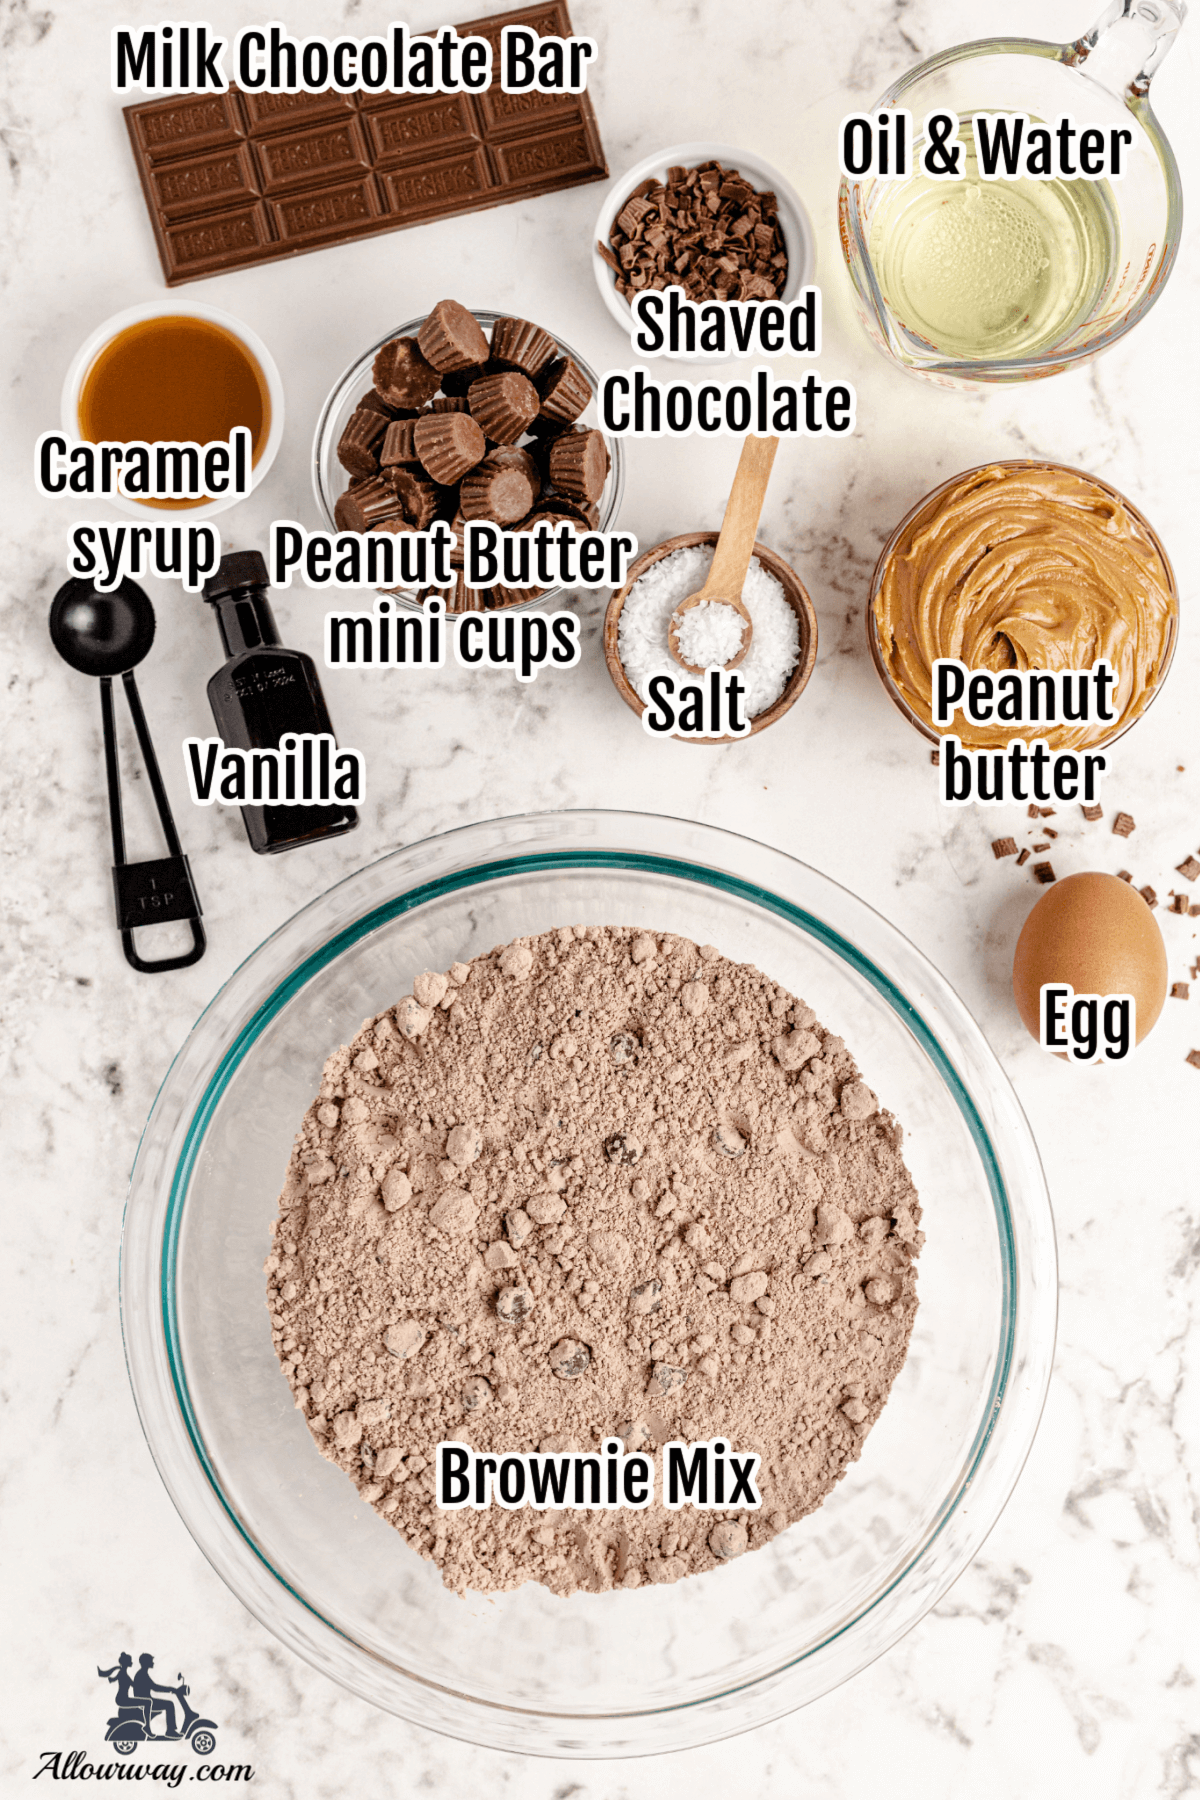 Ingredients for the Peanut Butter brownie cupcake recipe.